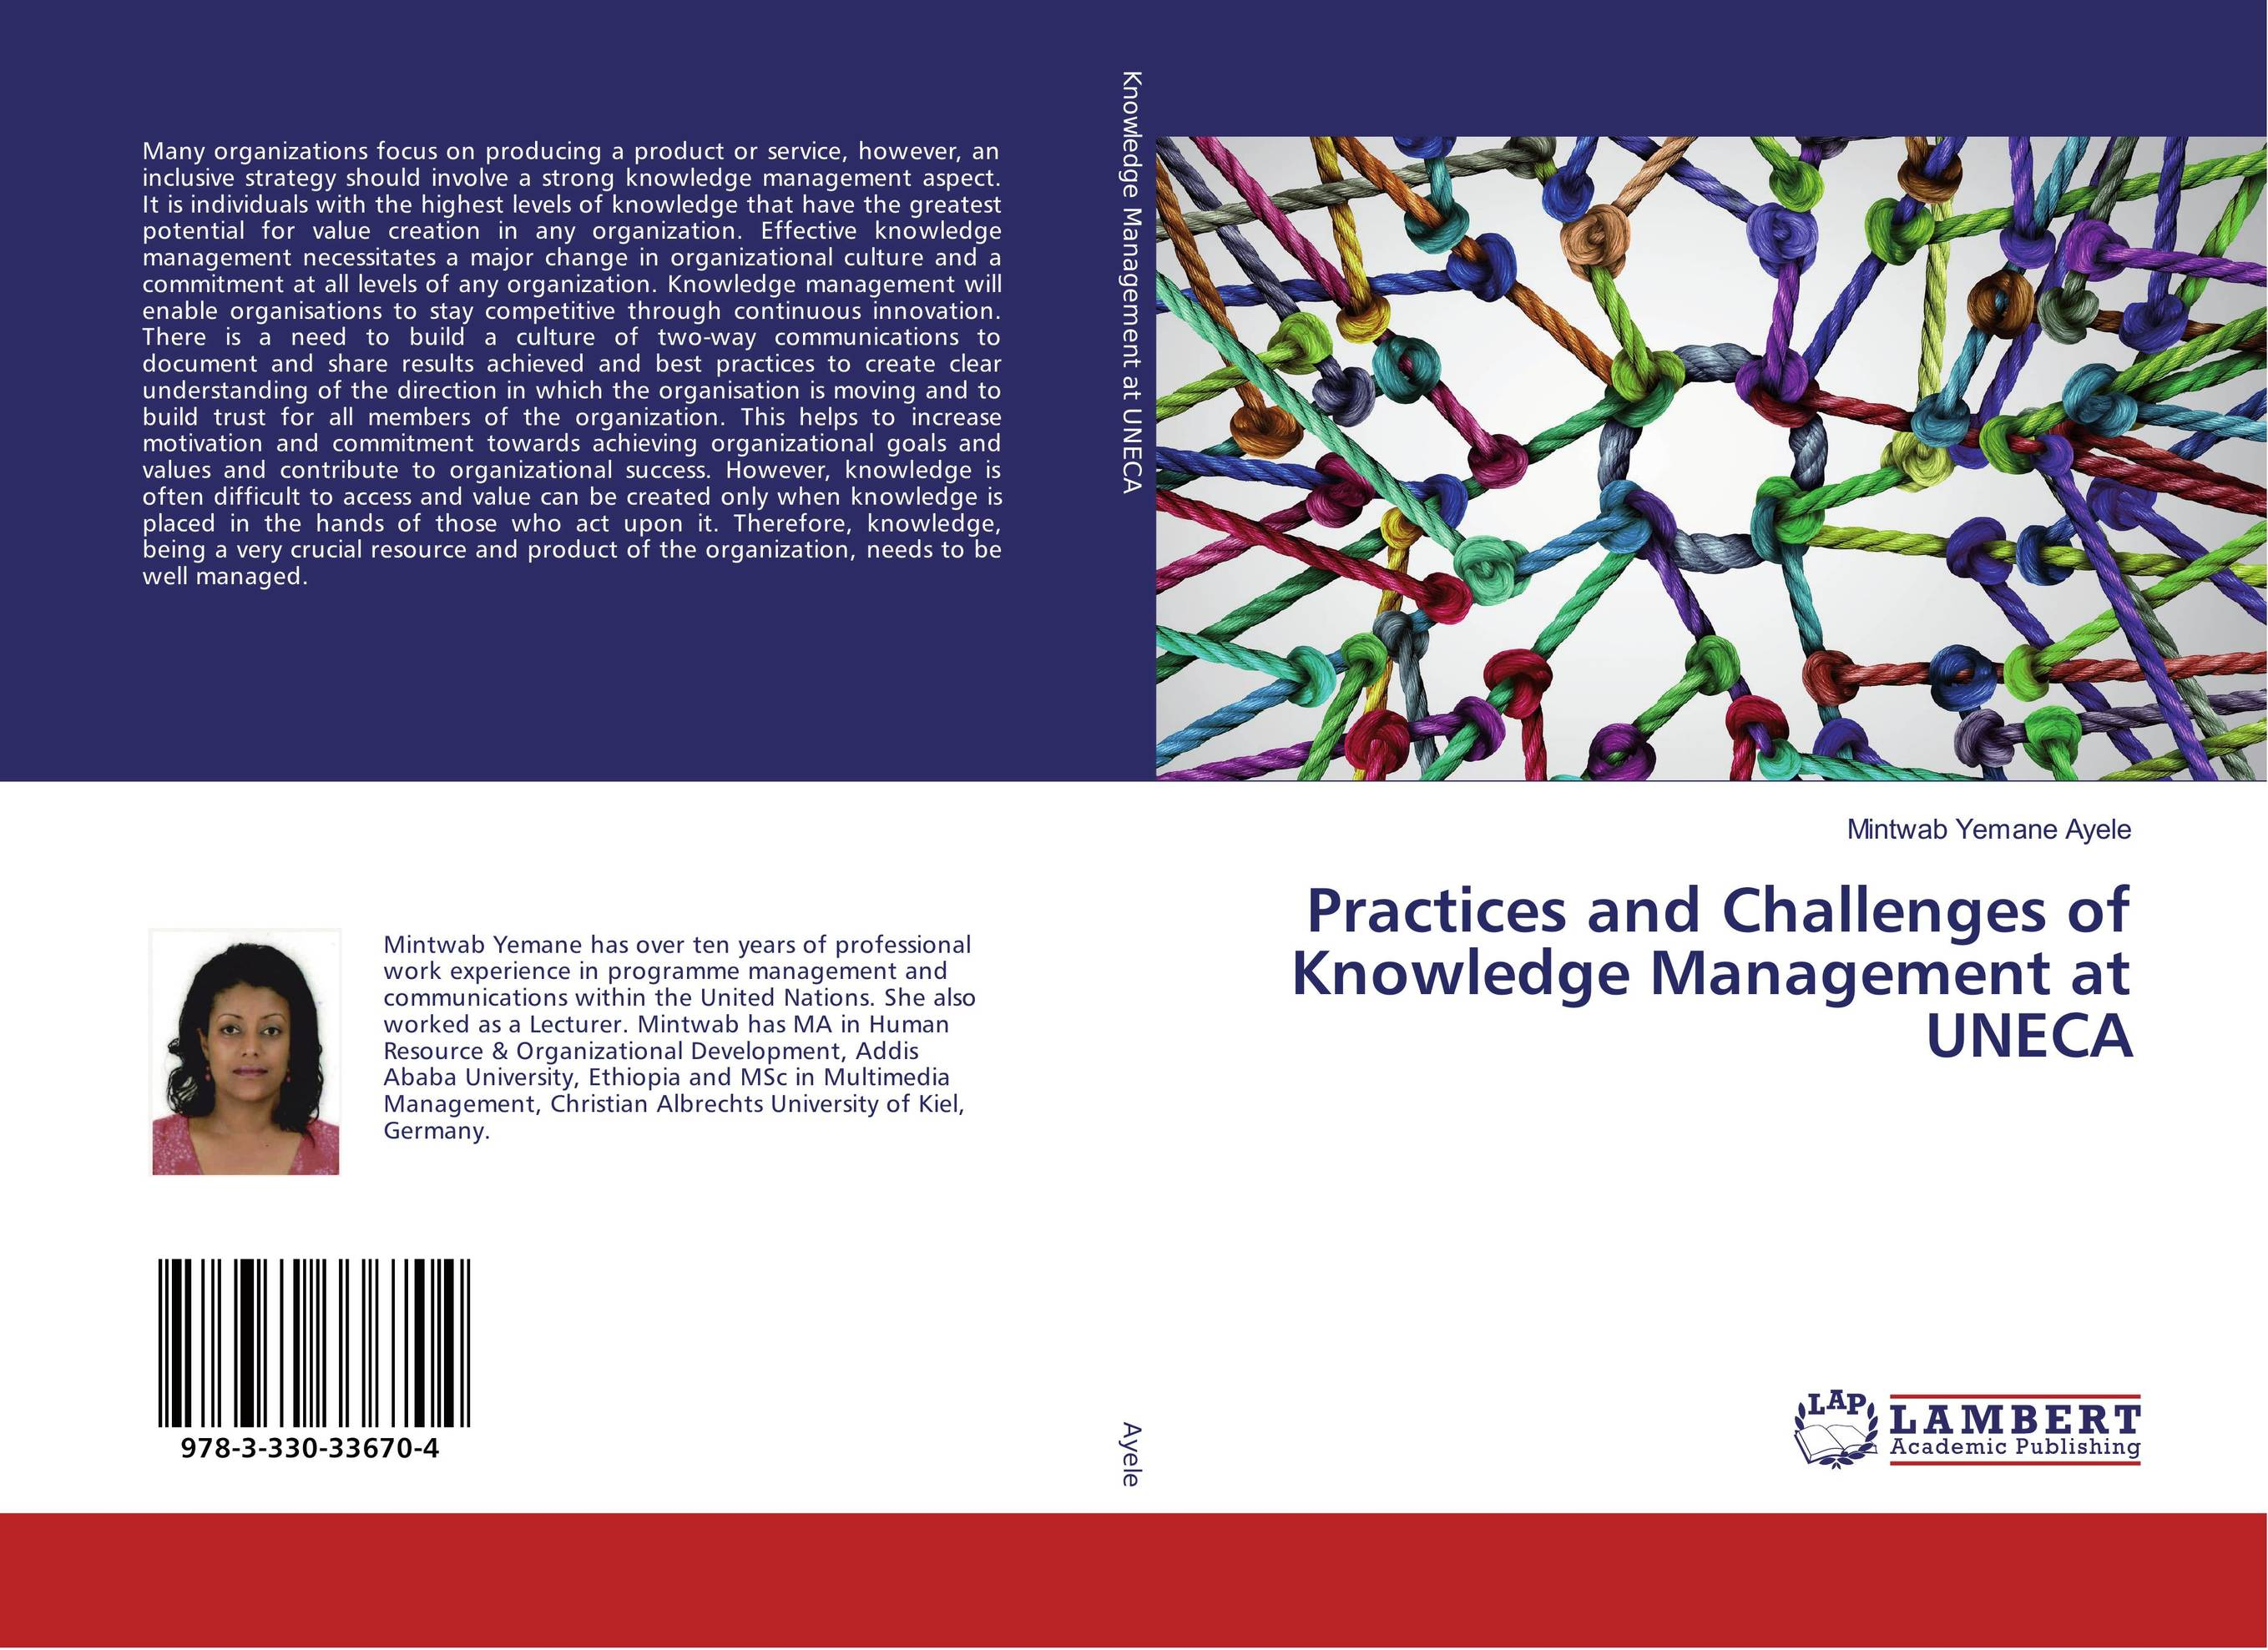 knowledge management and organizational culture toward The importance of culture to km is outlined by lee and choi (2000) who state that organizational culture should have several components with regard to knowledge: (1) people have positive orientation to knowledge, (2) people are not inhibited in sharing knowledge, (3) knowledge management project fits with the existing culture this is also a.